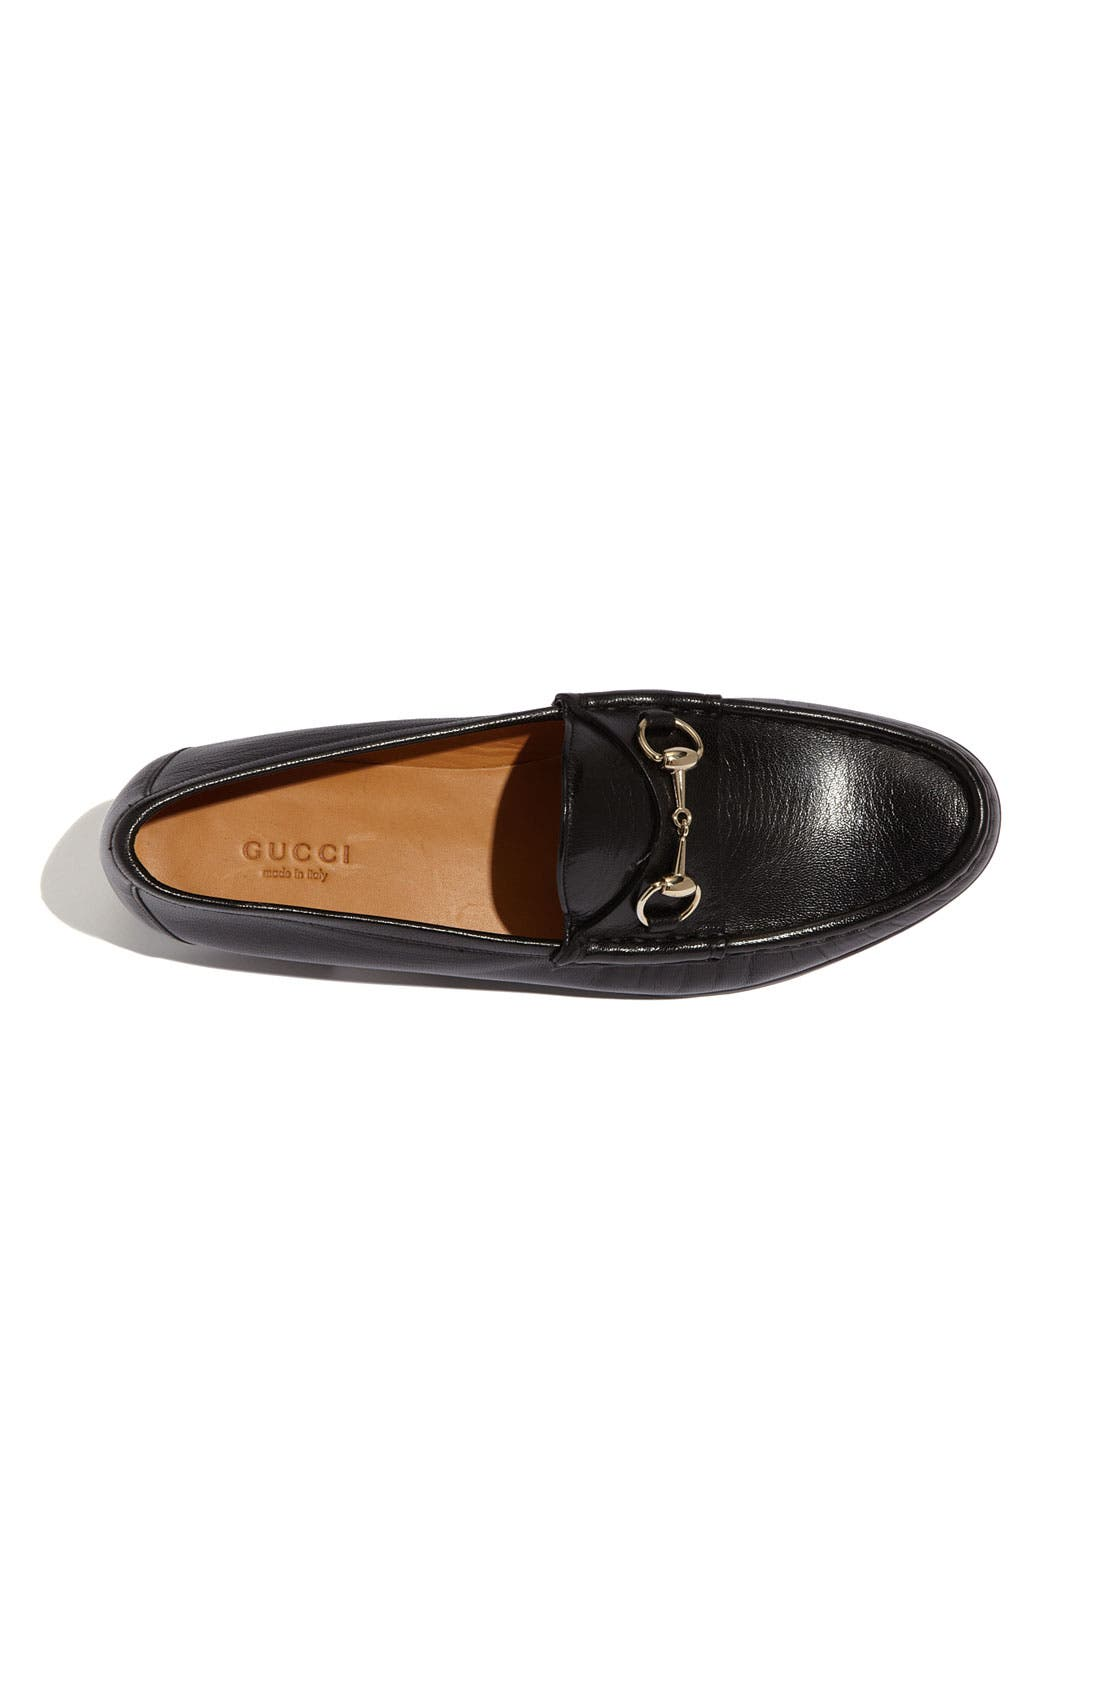 Alternate Image 3  - Gucci 'Clyde' Leather Loafer